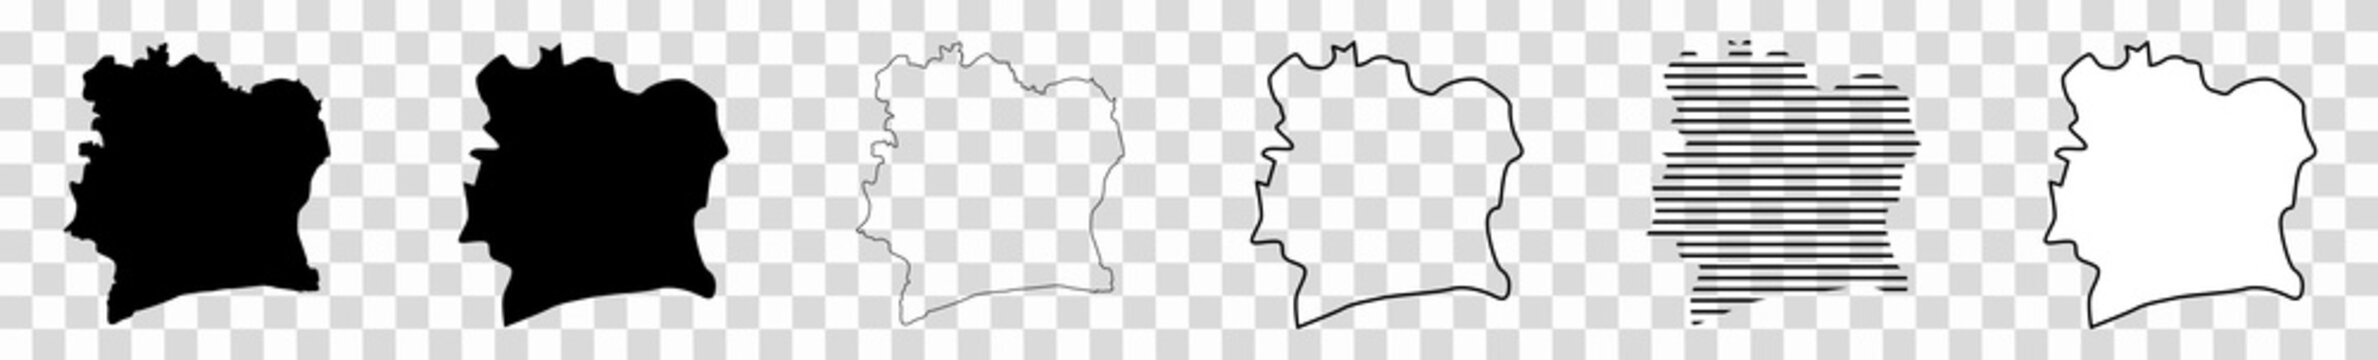 Ivory Coast Map Black   Ivorian Border   State Country   Transparent Isolated   Variations